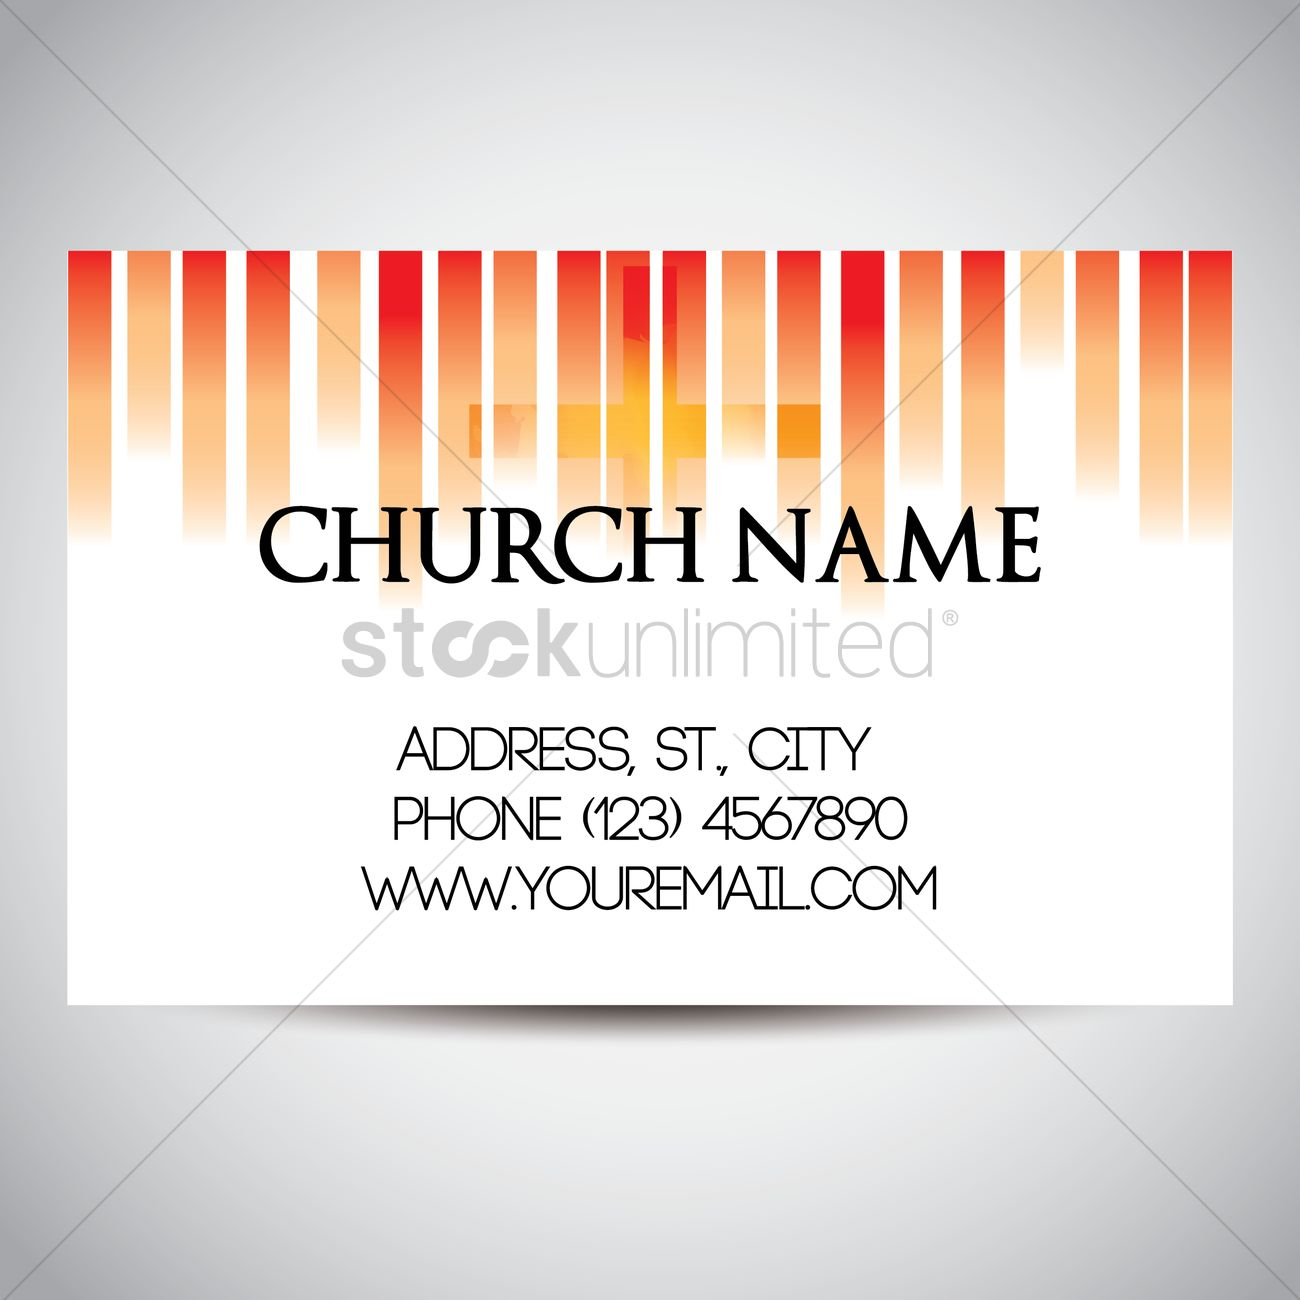 Church Name Card Template Design Vector Image StockUnlimited - Name card template